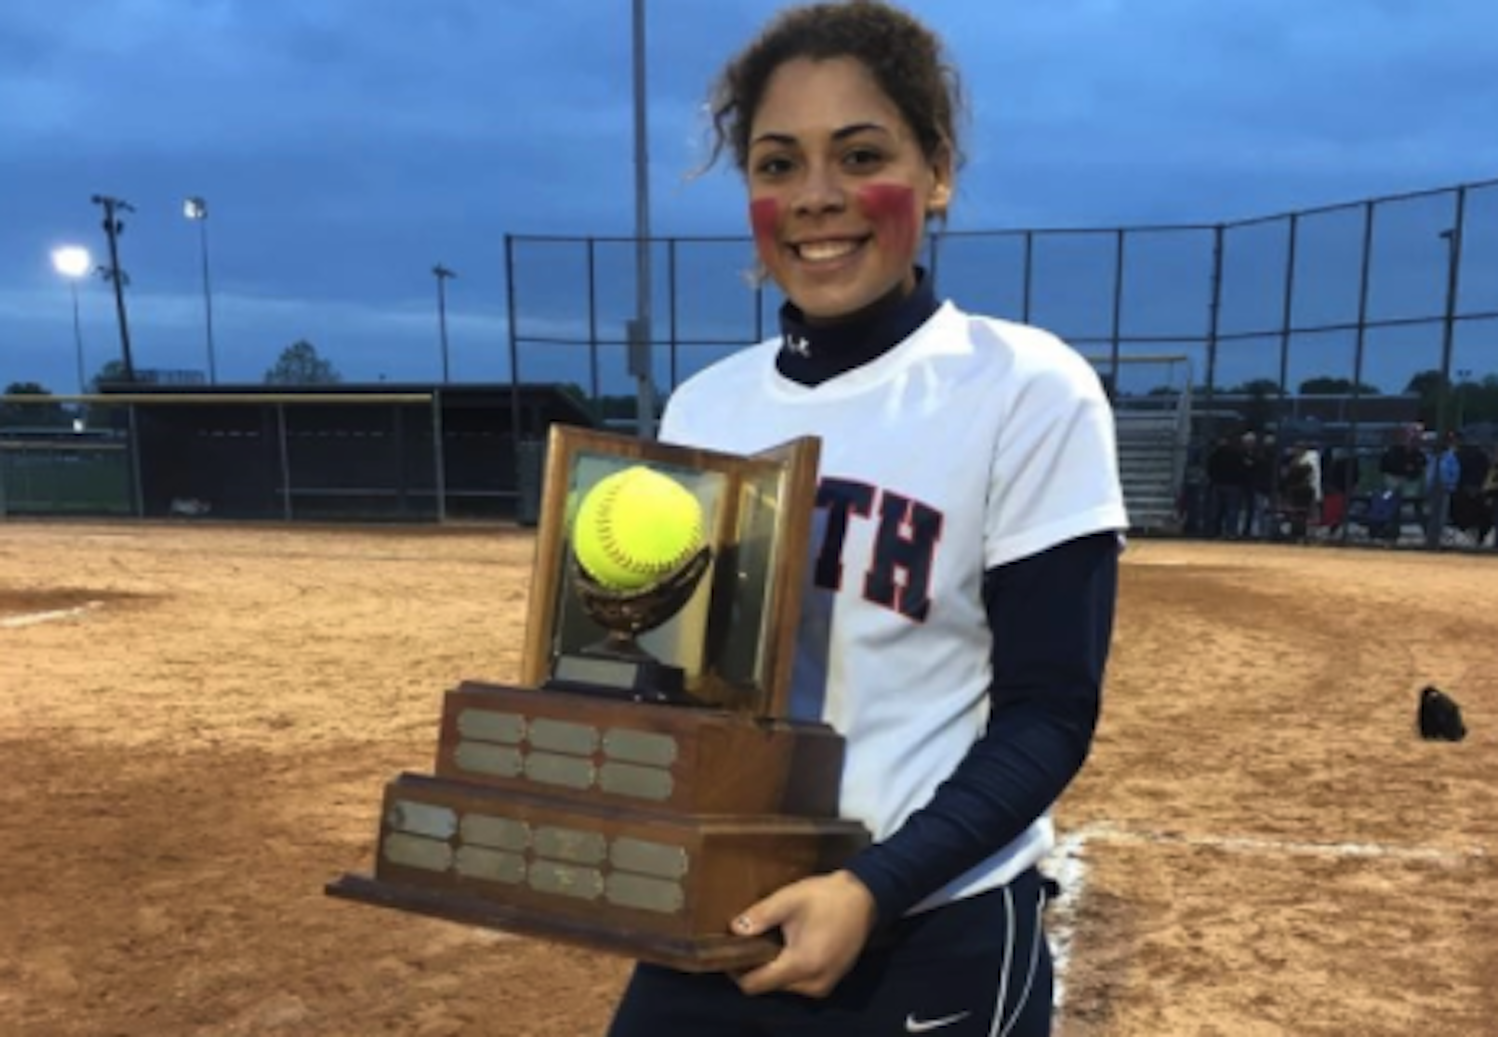 After knee surgery, athlete returns to softball